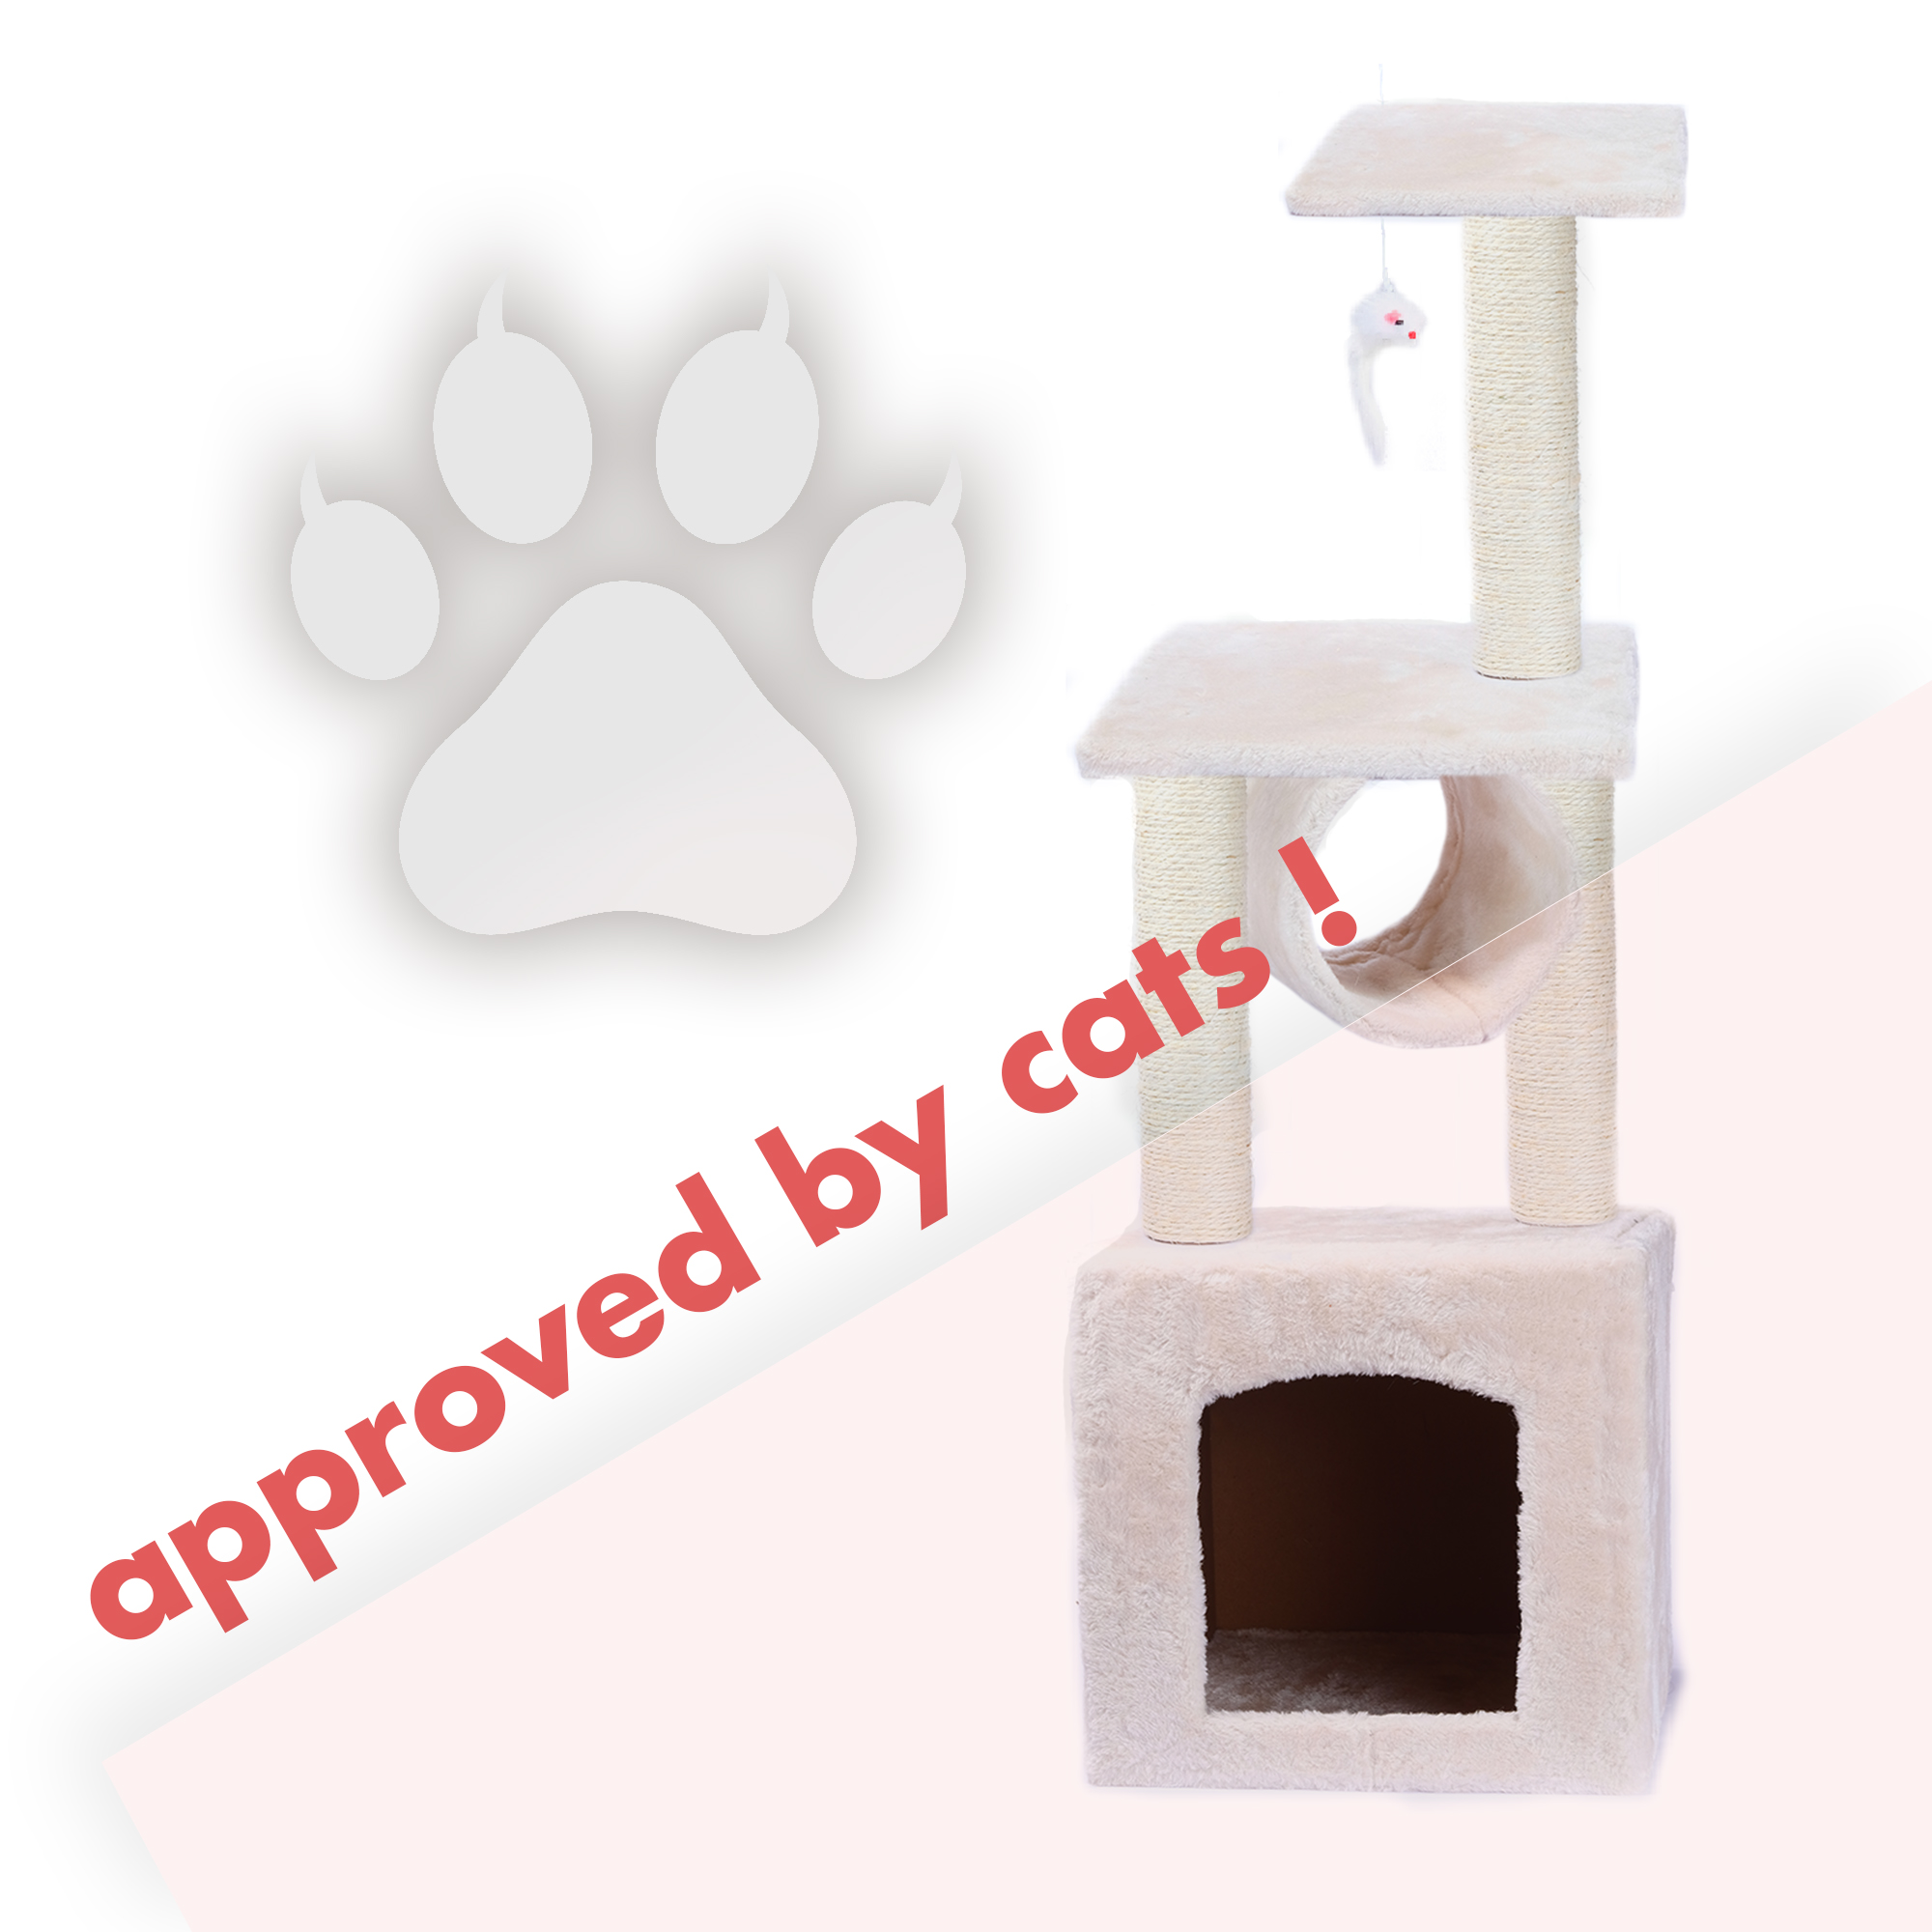 approved by cats.jpg